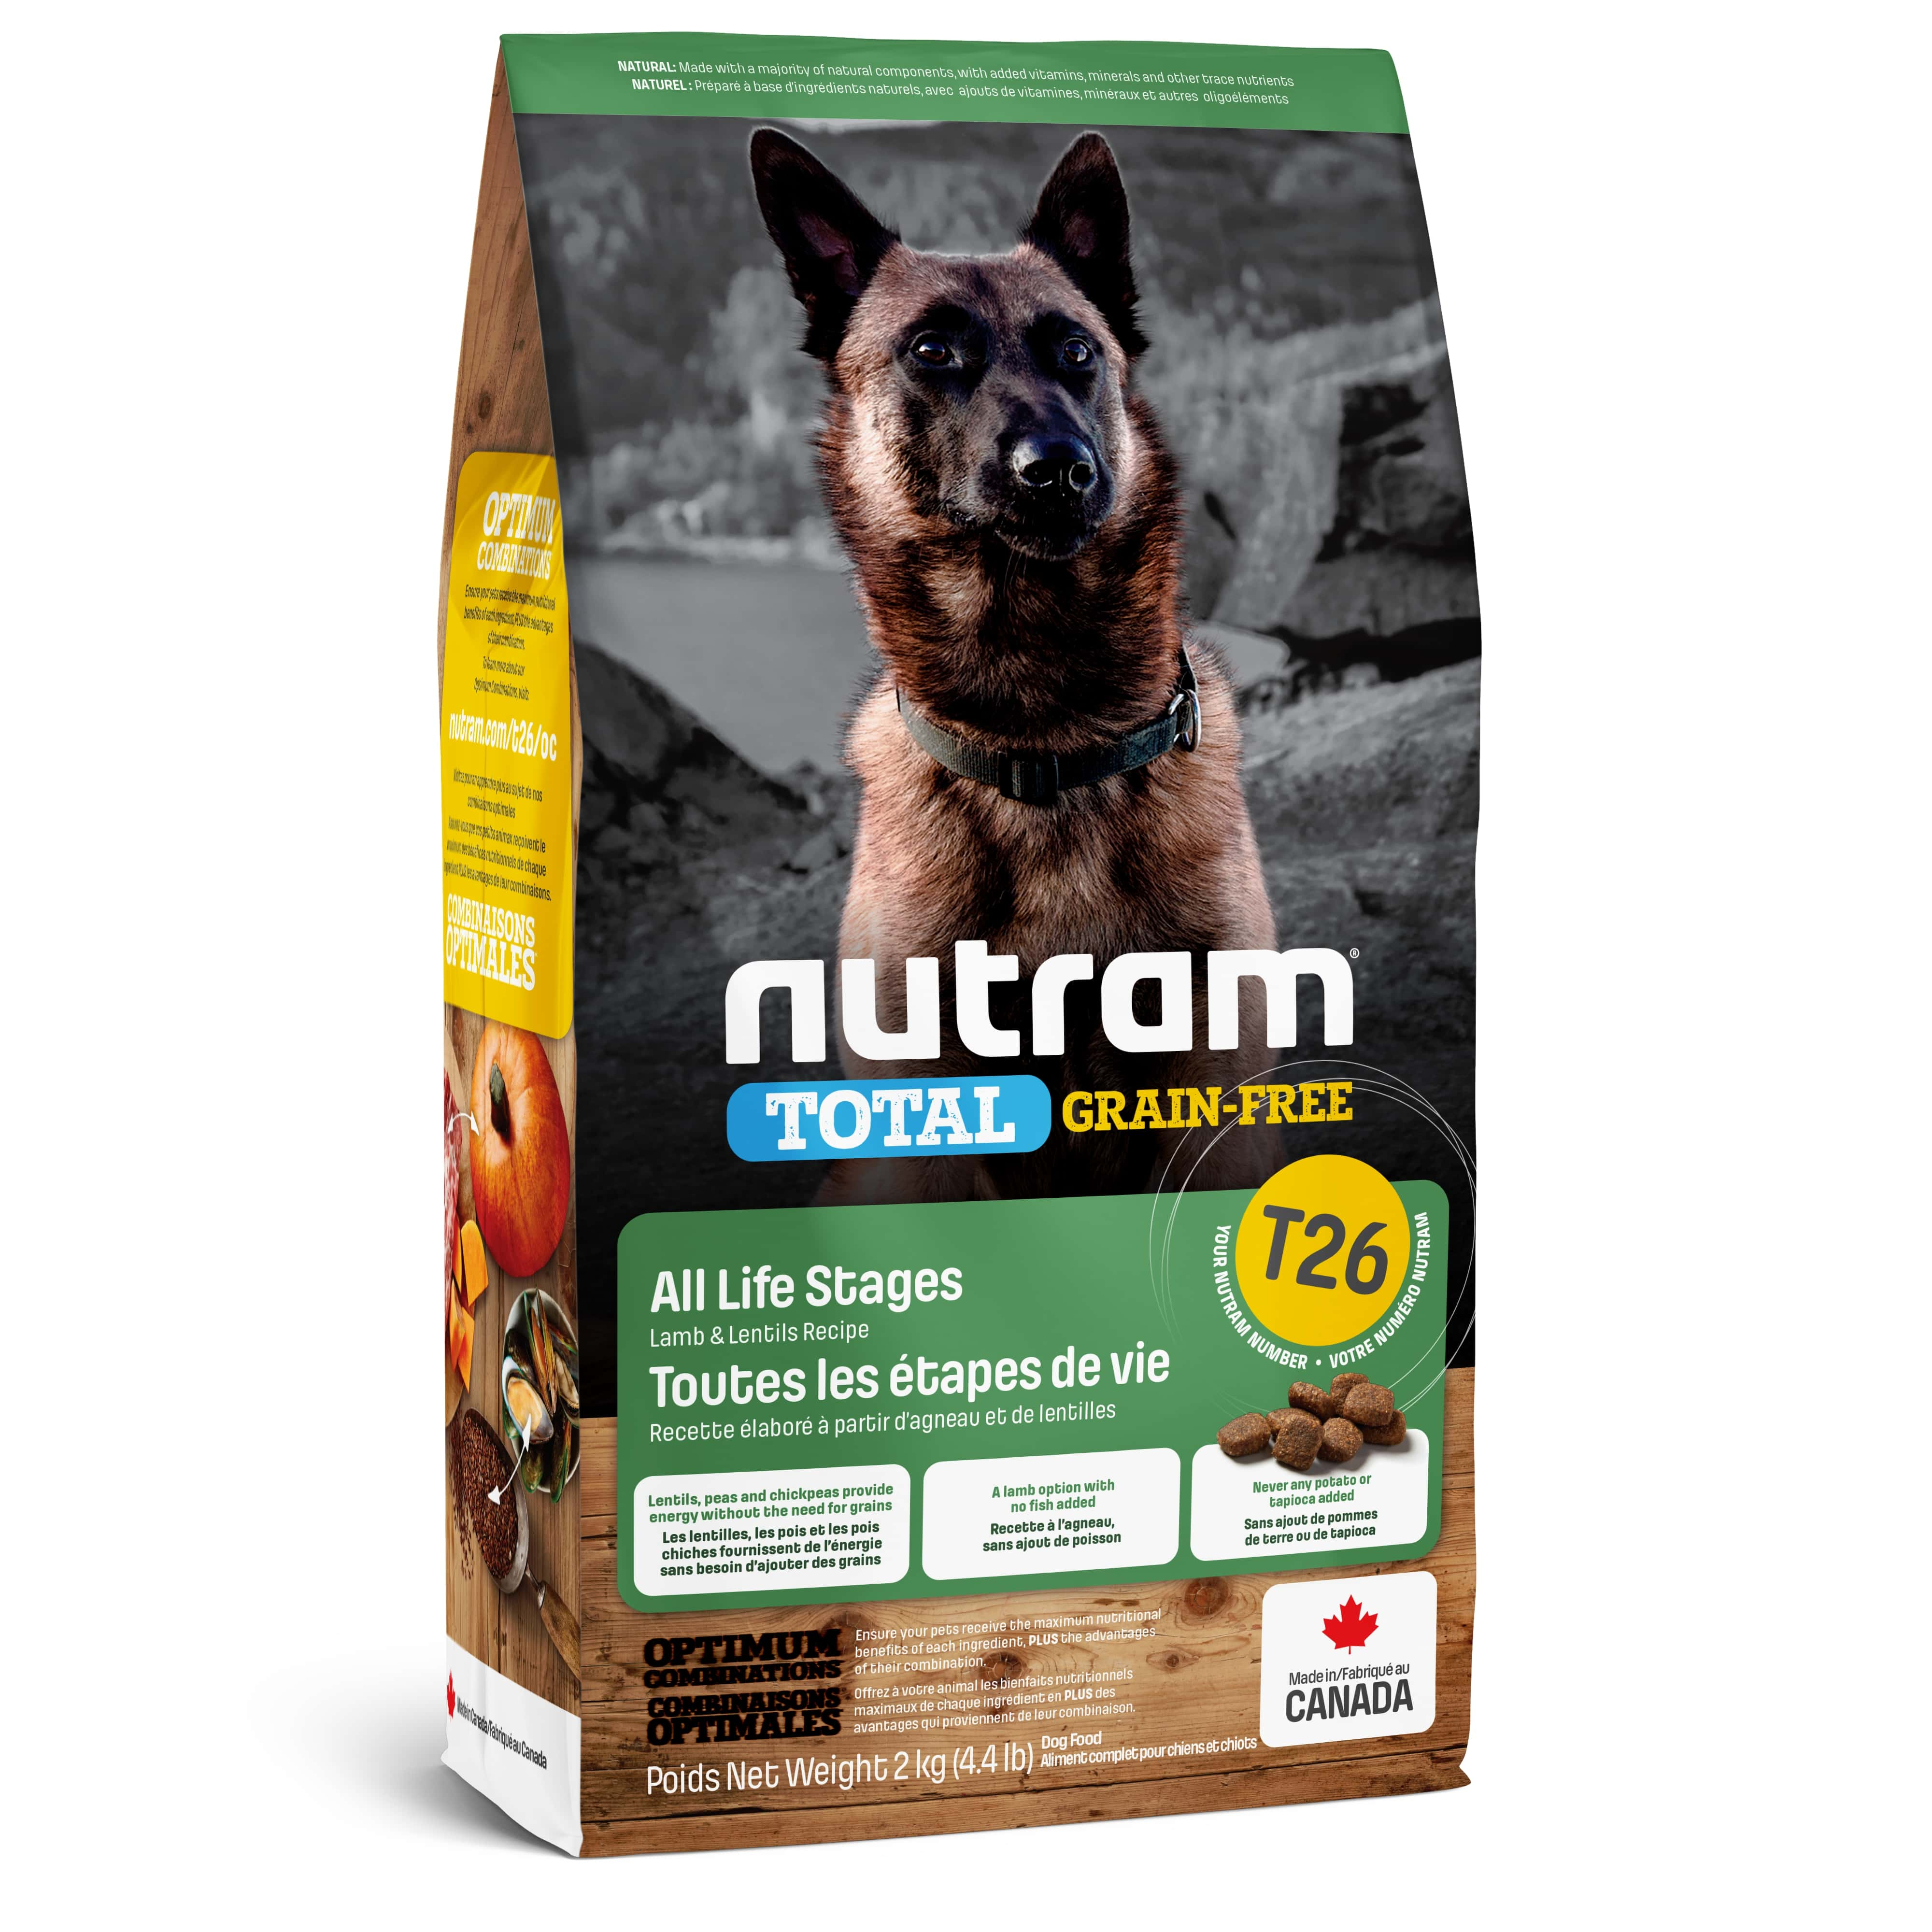 T26 Nutram Total Grain-Free® Lamb & Lentils Dog Food